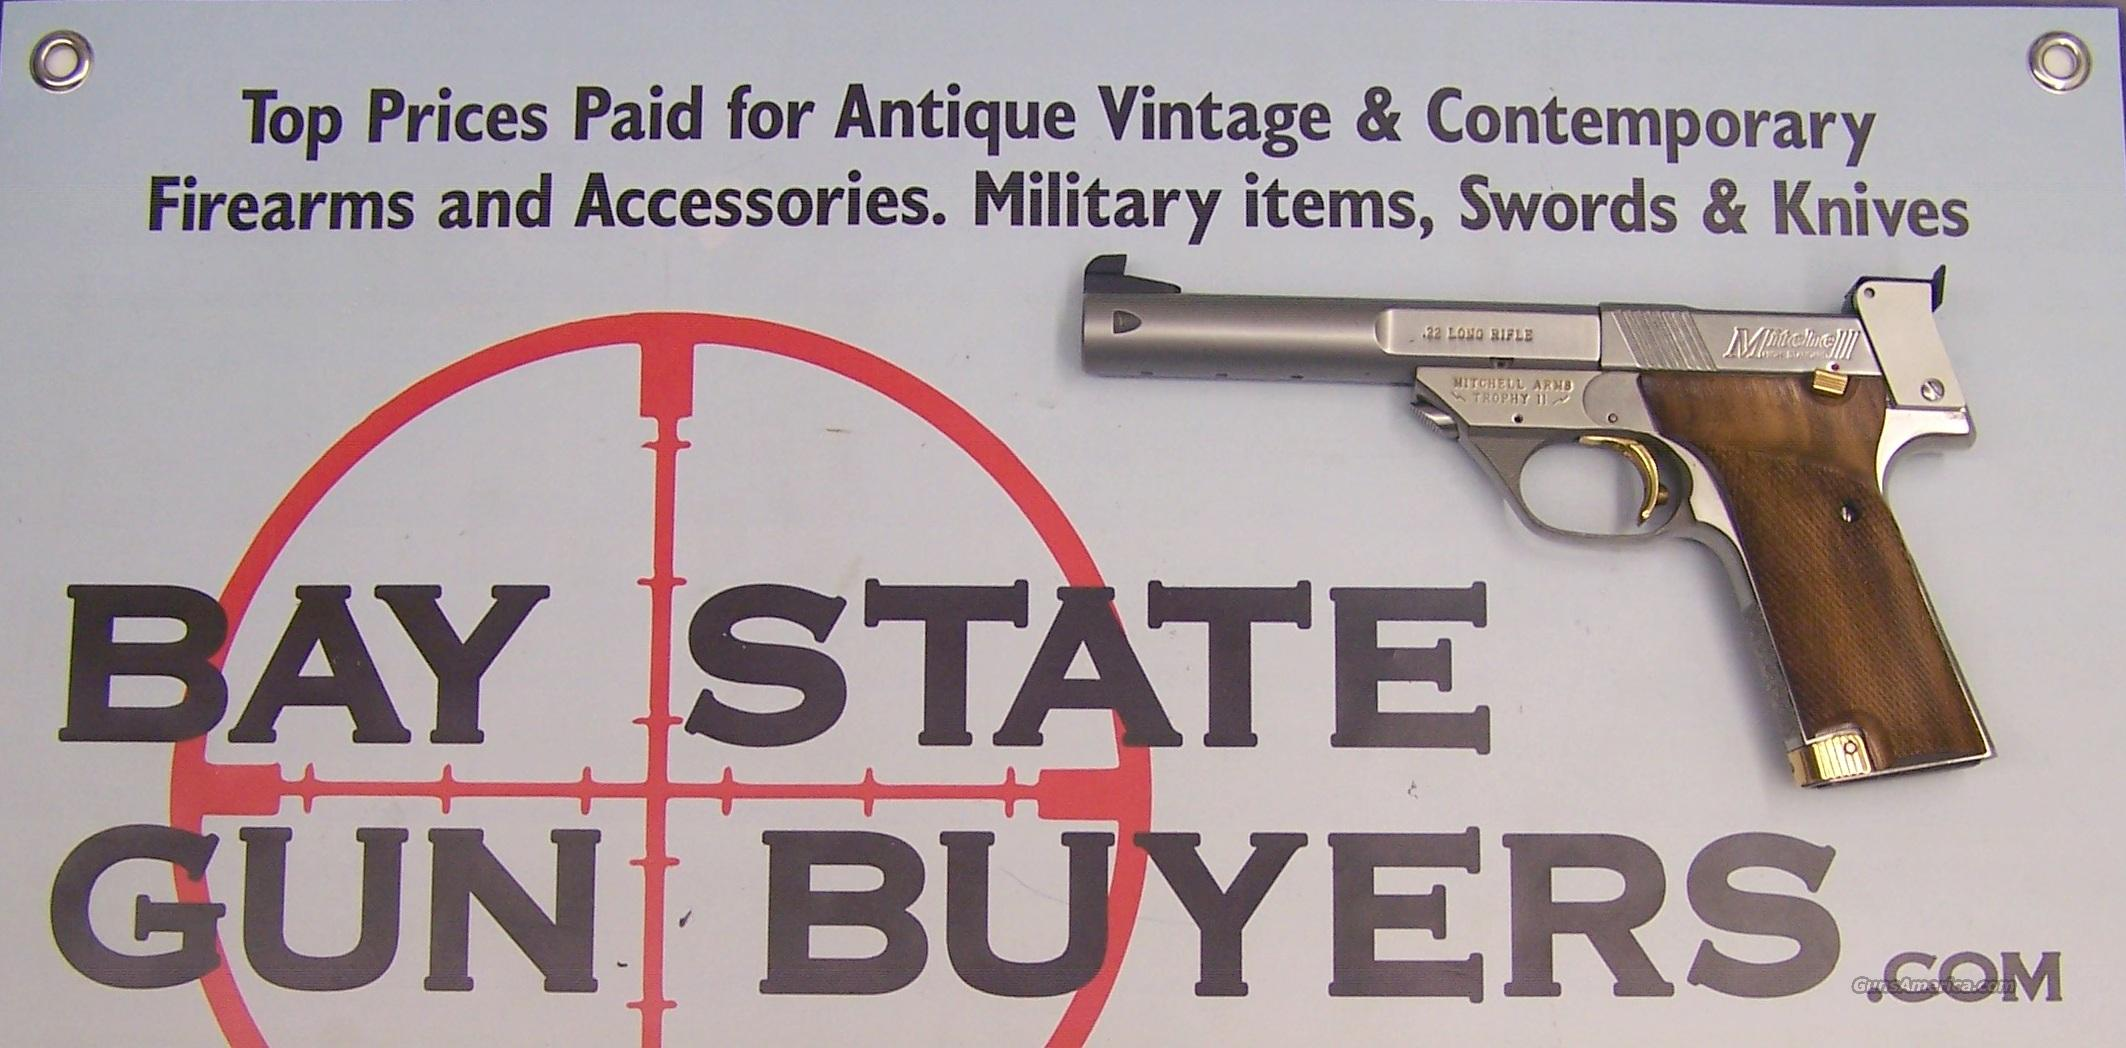 Mitchell Arms TROPHY II .22LR target pistol ORIGINAL BOX & PAPERS  Guns > Pistols > Mitchell Arms Pistols